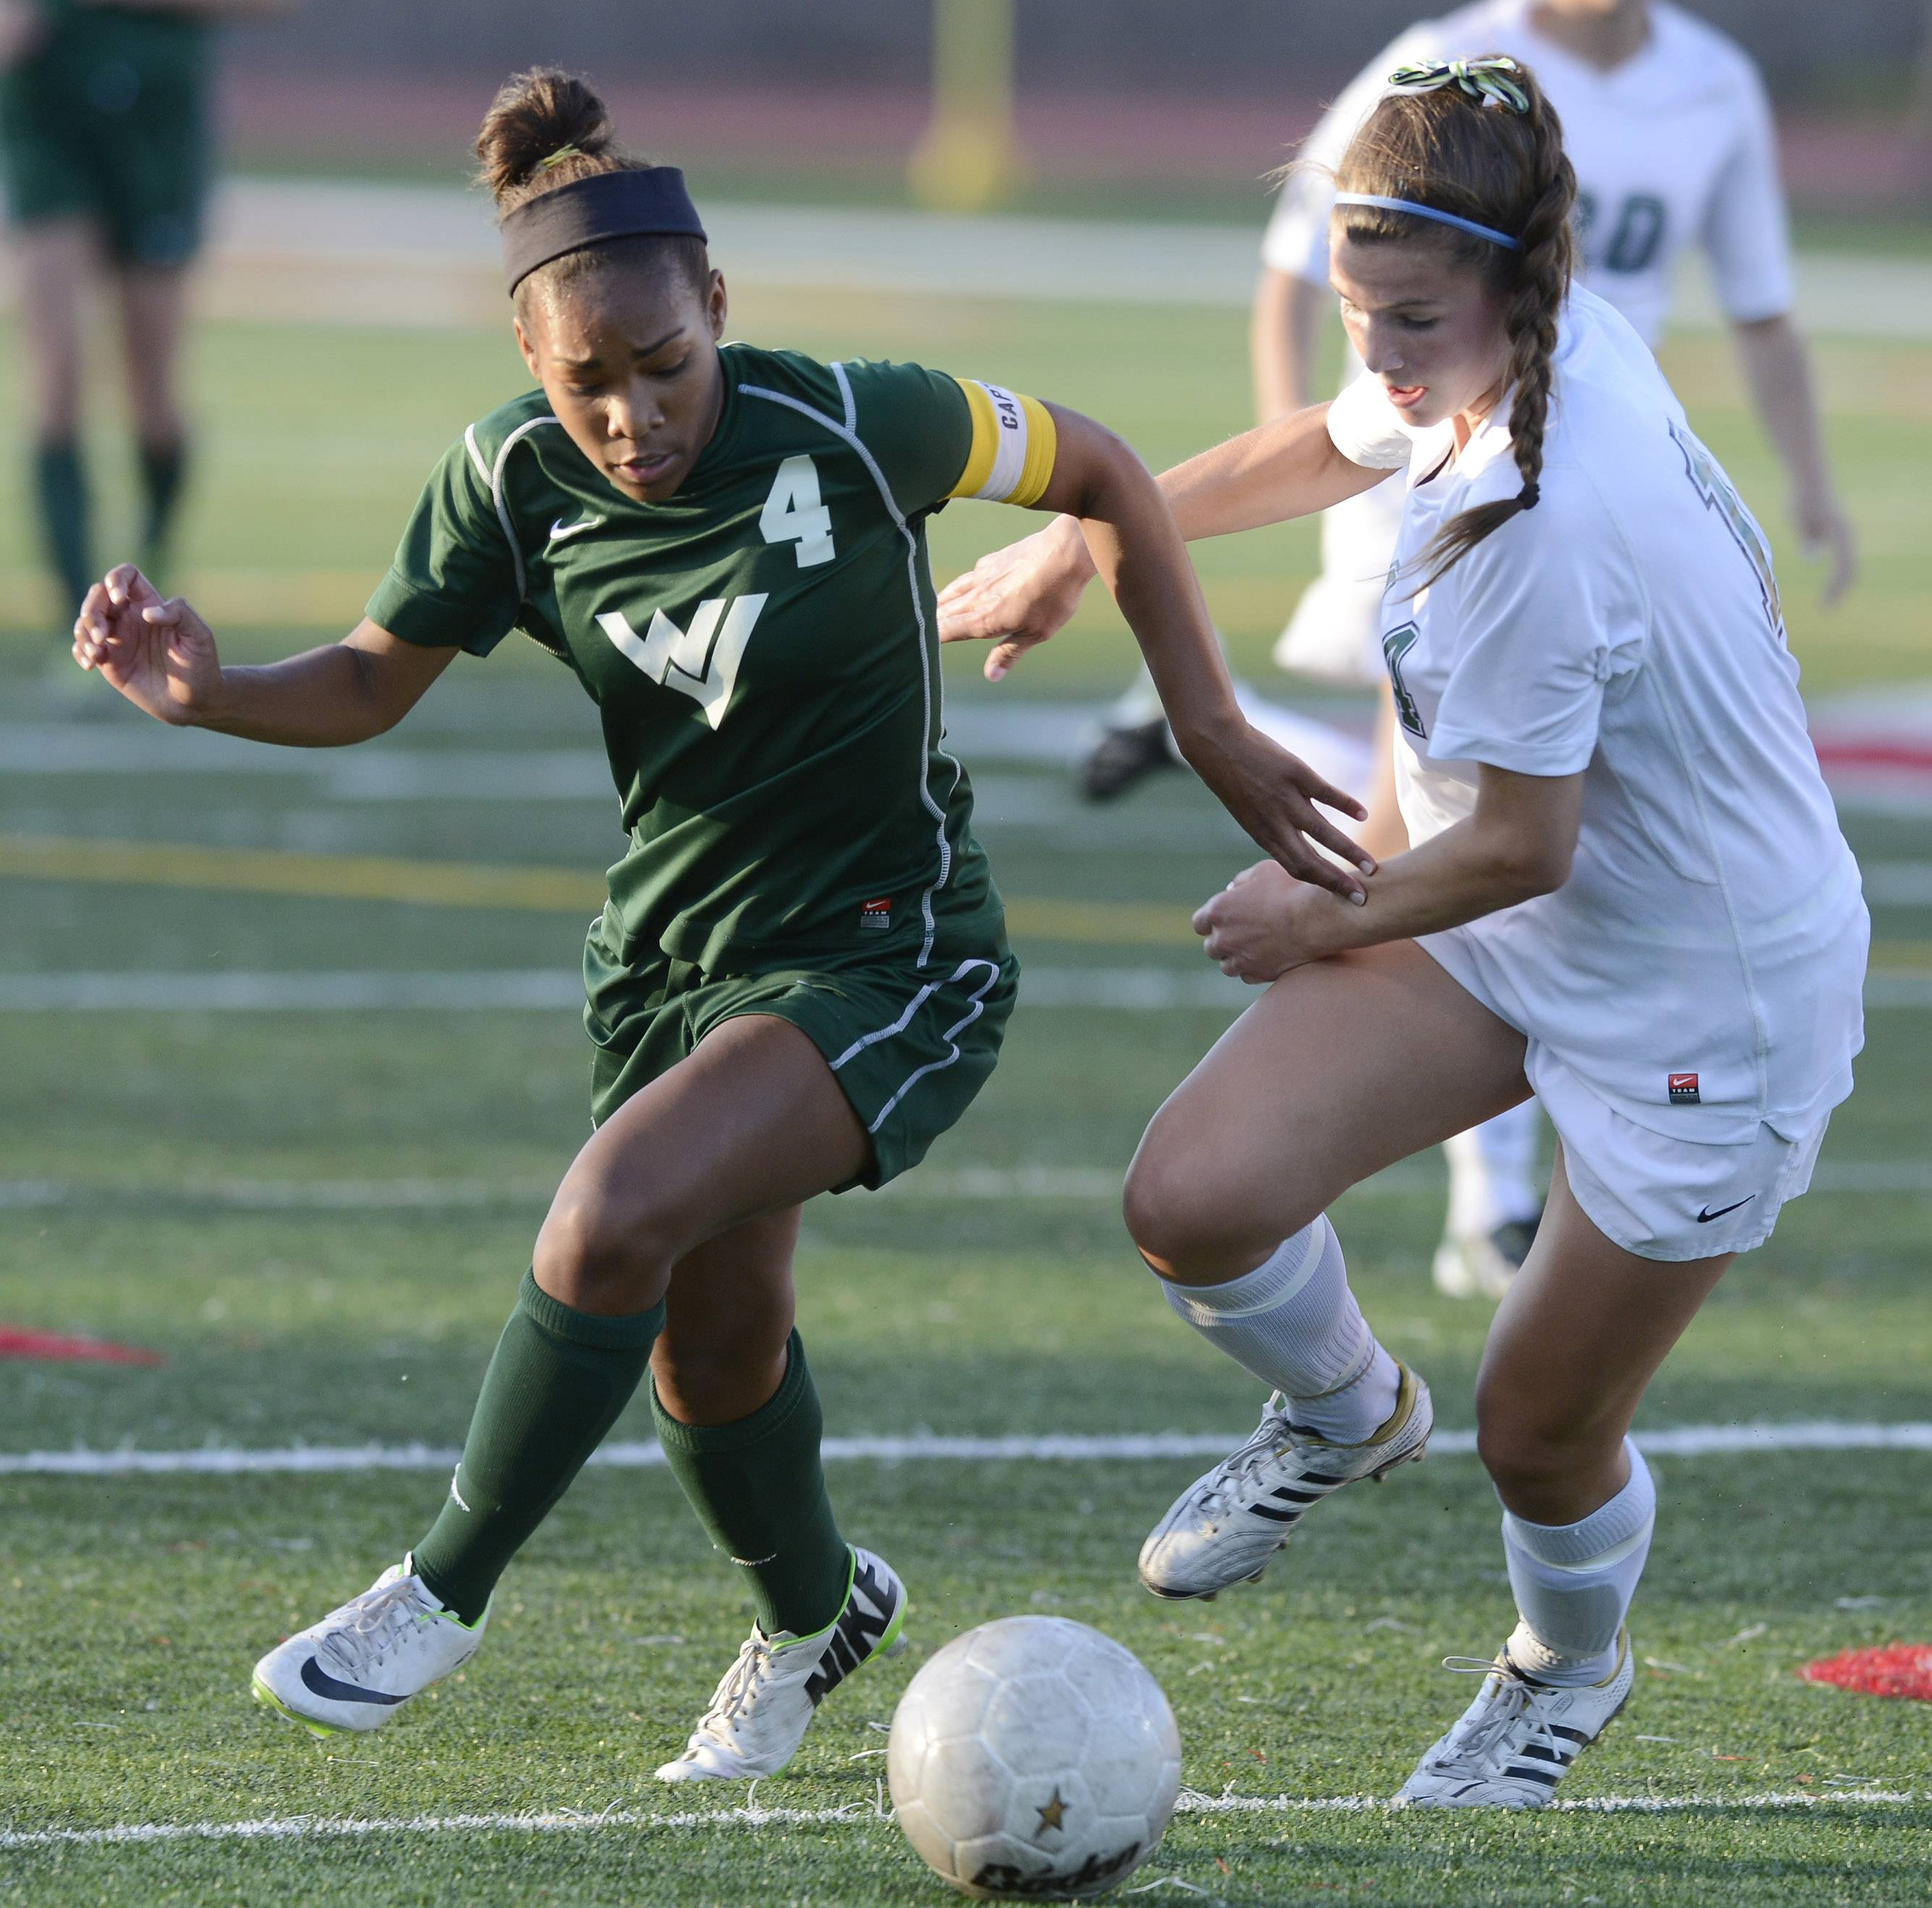 Waubonsie Valley's Kristen Dodson, left, tries to get past New Trier's Sarah Connors during the girls soccer Class 3A state semifinal at North Central College in Naperville Friday.